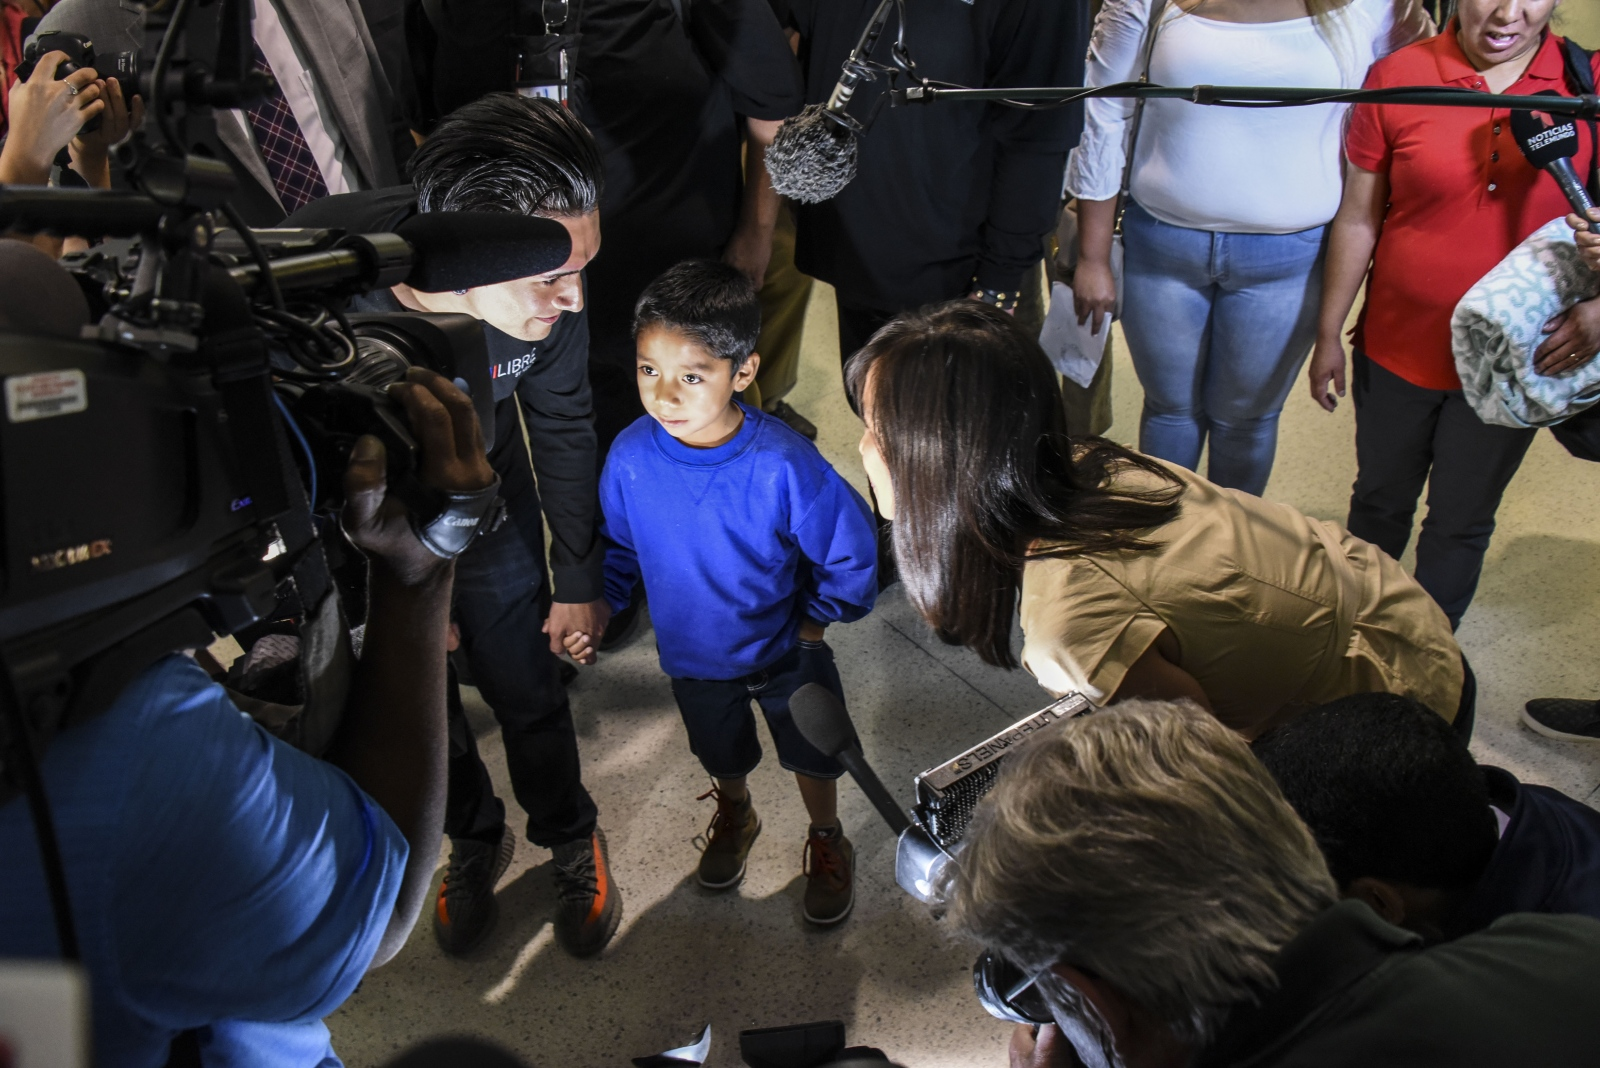 Darwin Mejia-Mejia is thronged my the media following his flight from Phoenix, Arizona to  Baltimore's BWI airport, where he was reunited with his mother, Beata Mariana de Jesus Mejia-Mejia  on Friday, June 22 at 2:25 a.m.